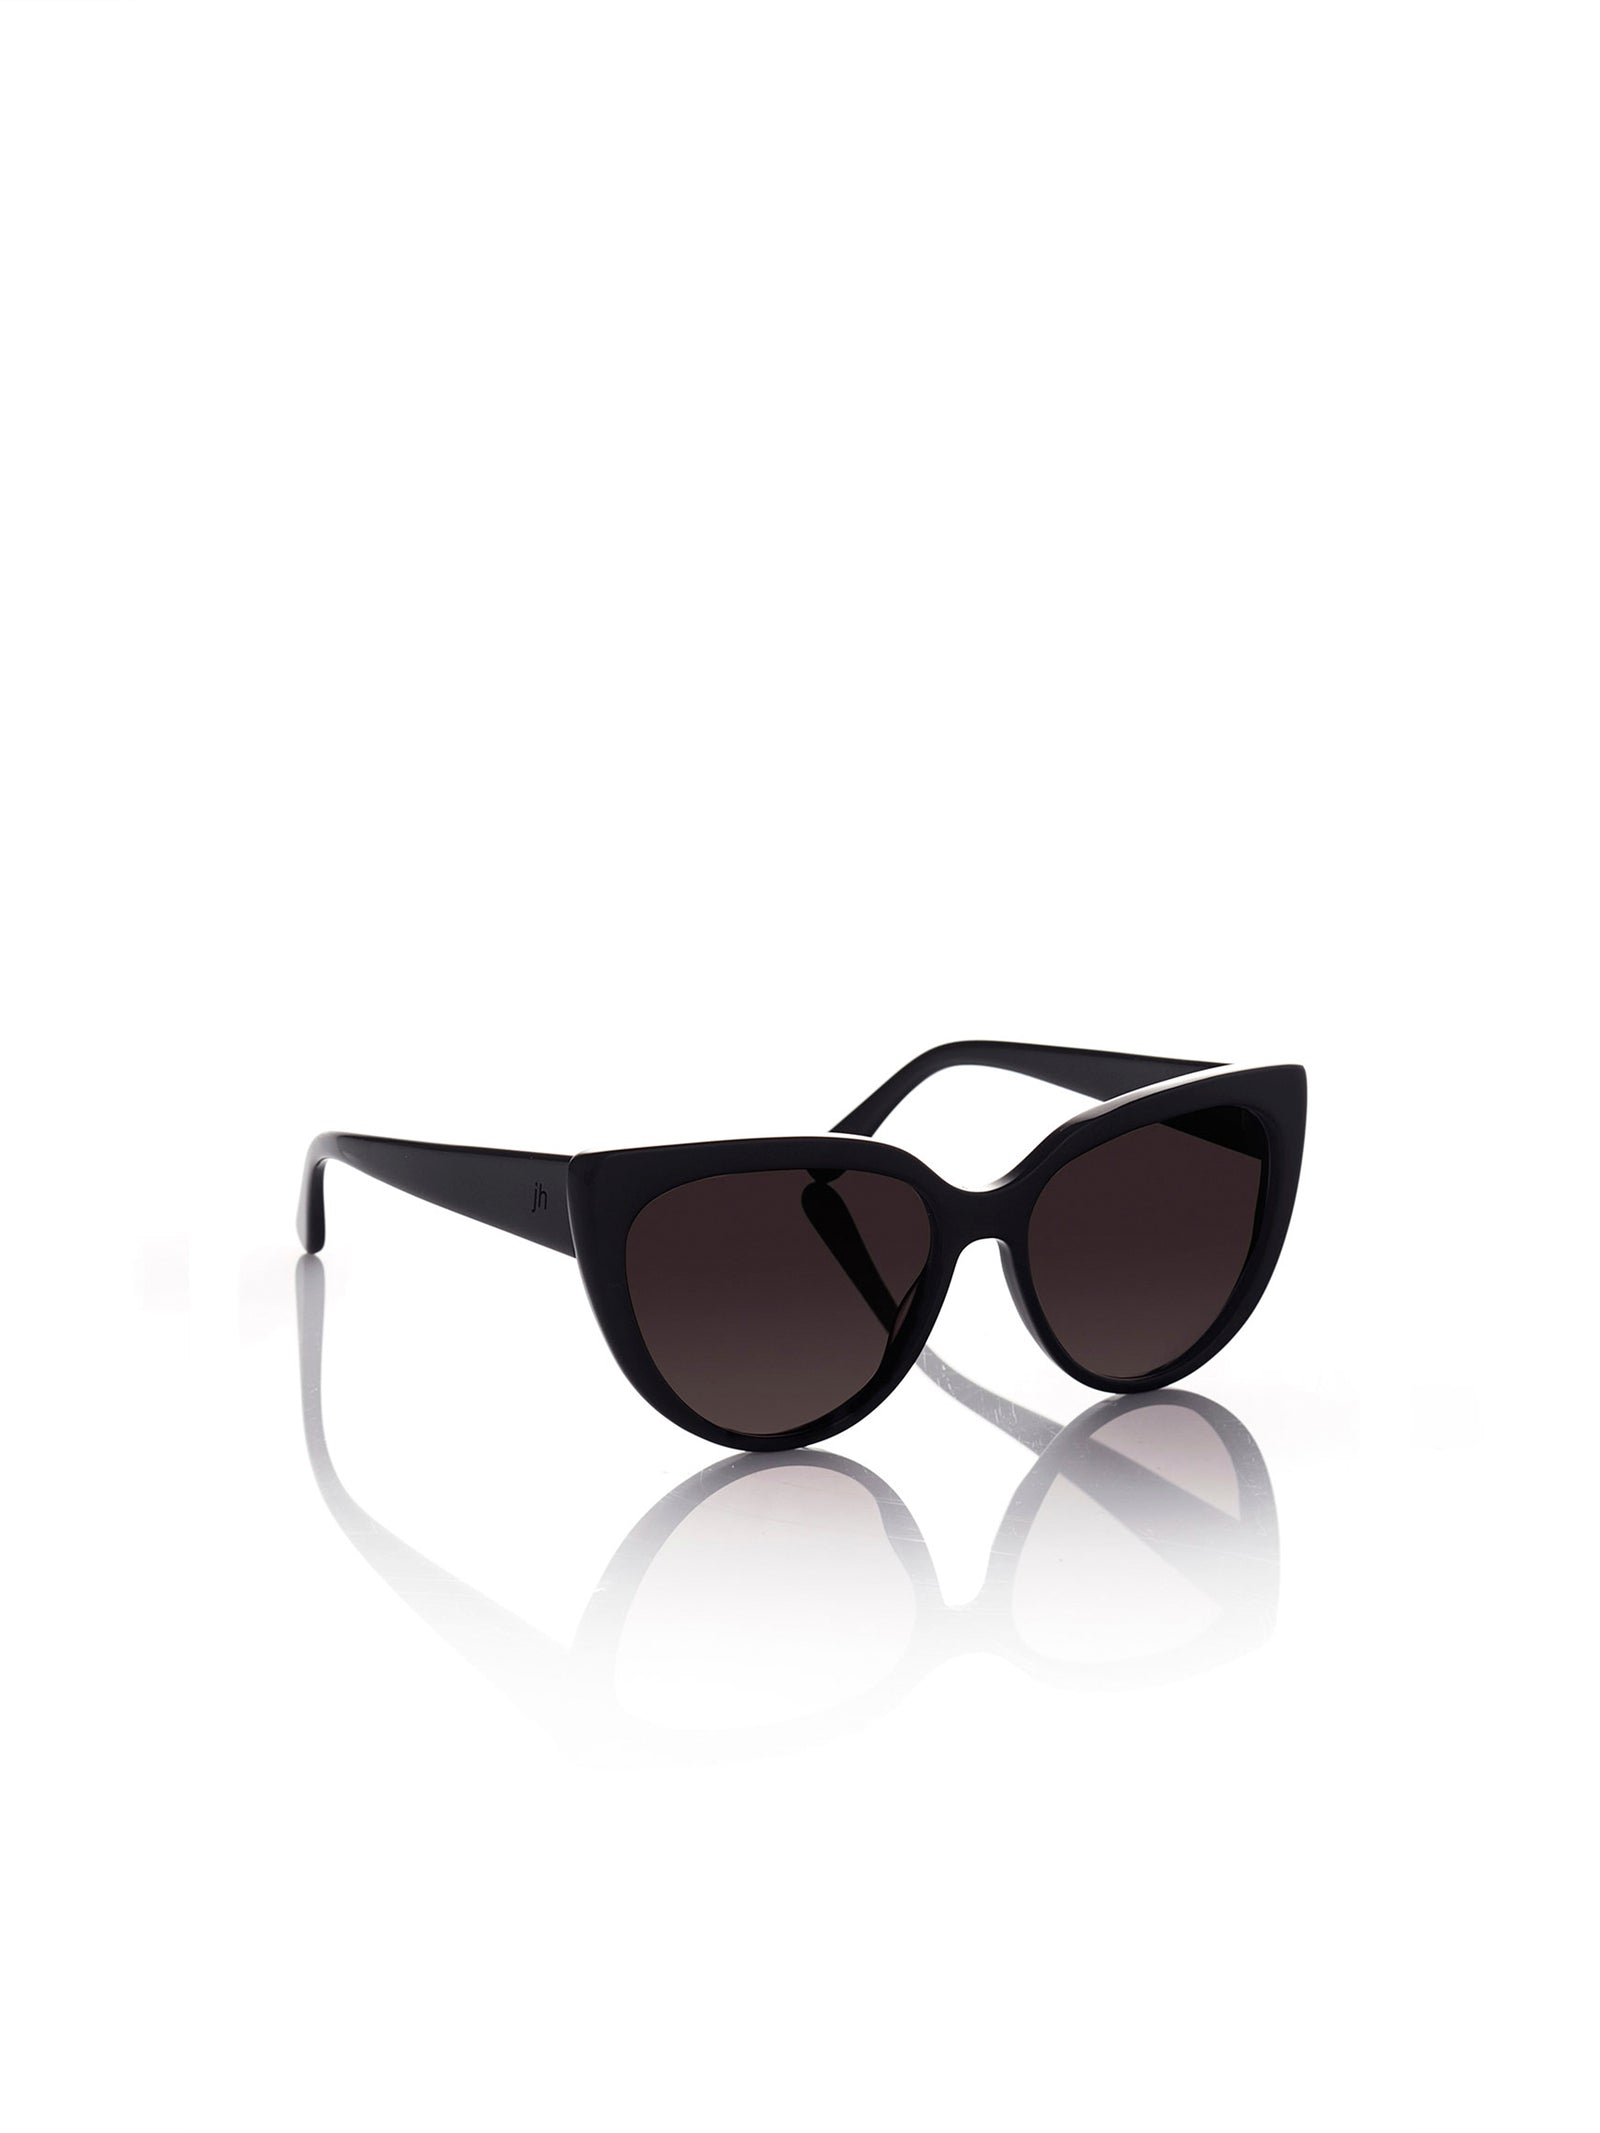 JH Eyewear No. 02 (acetate) black